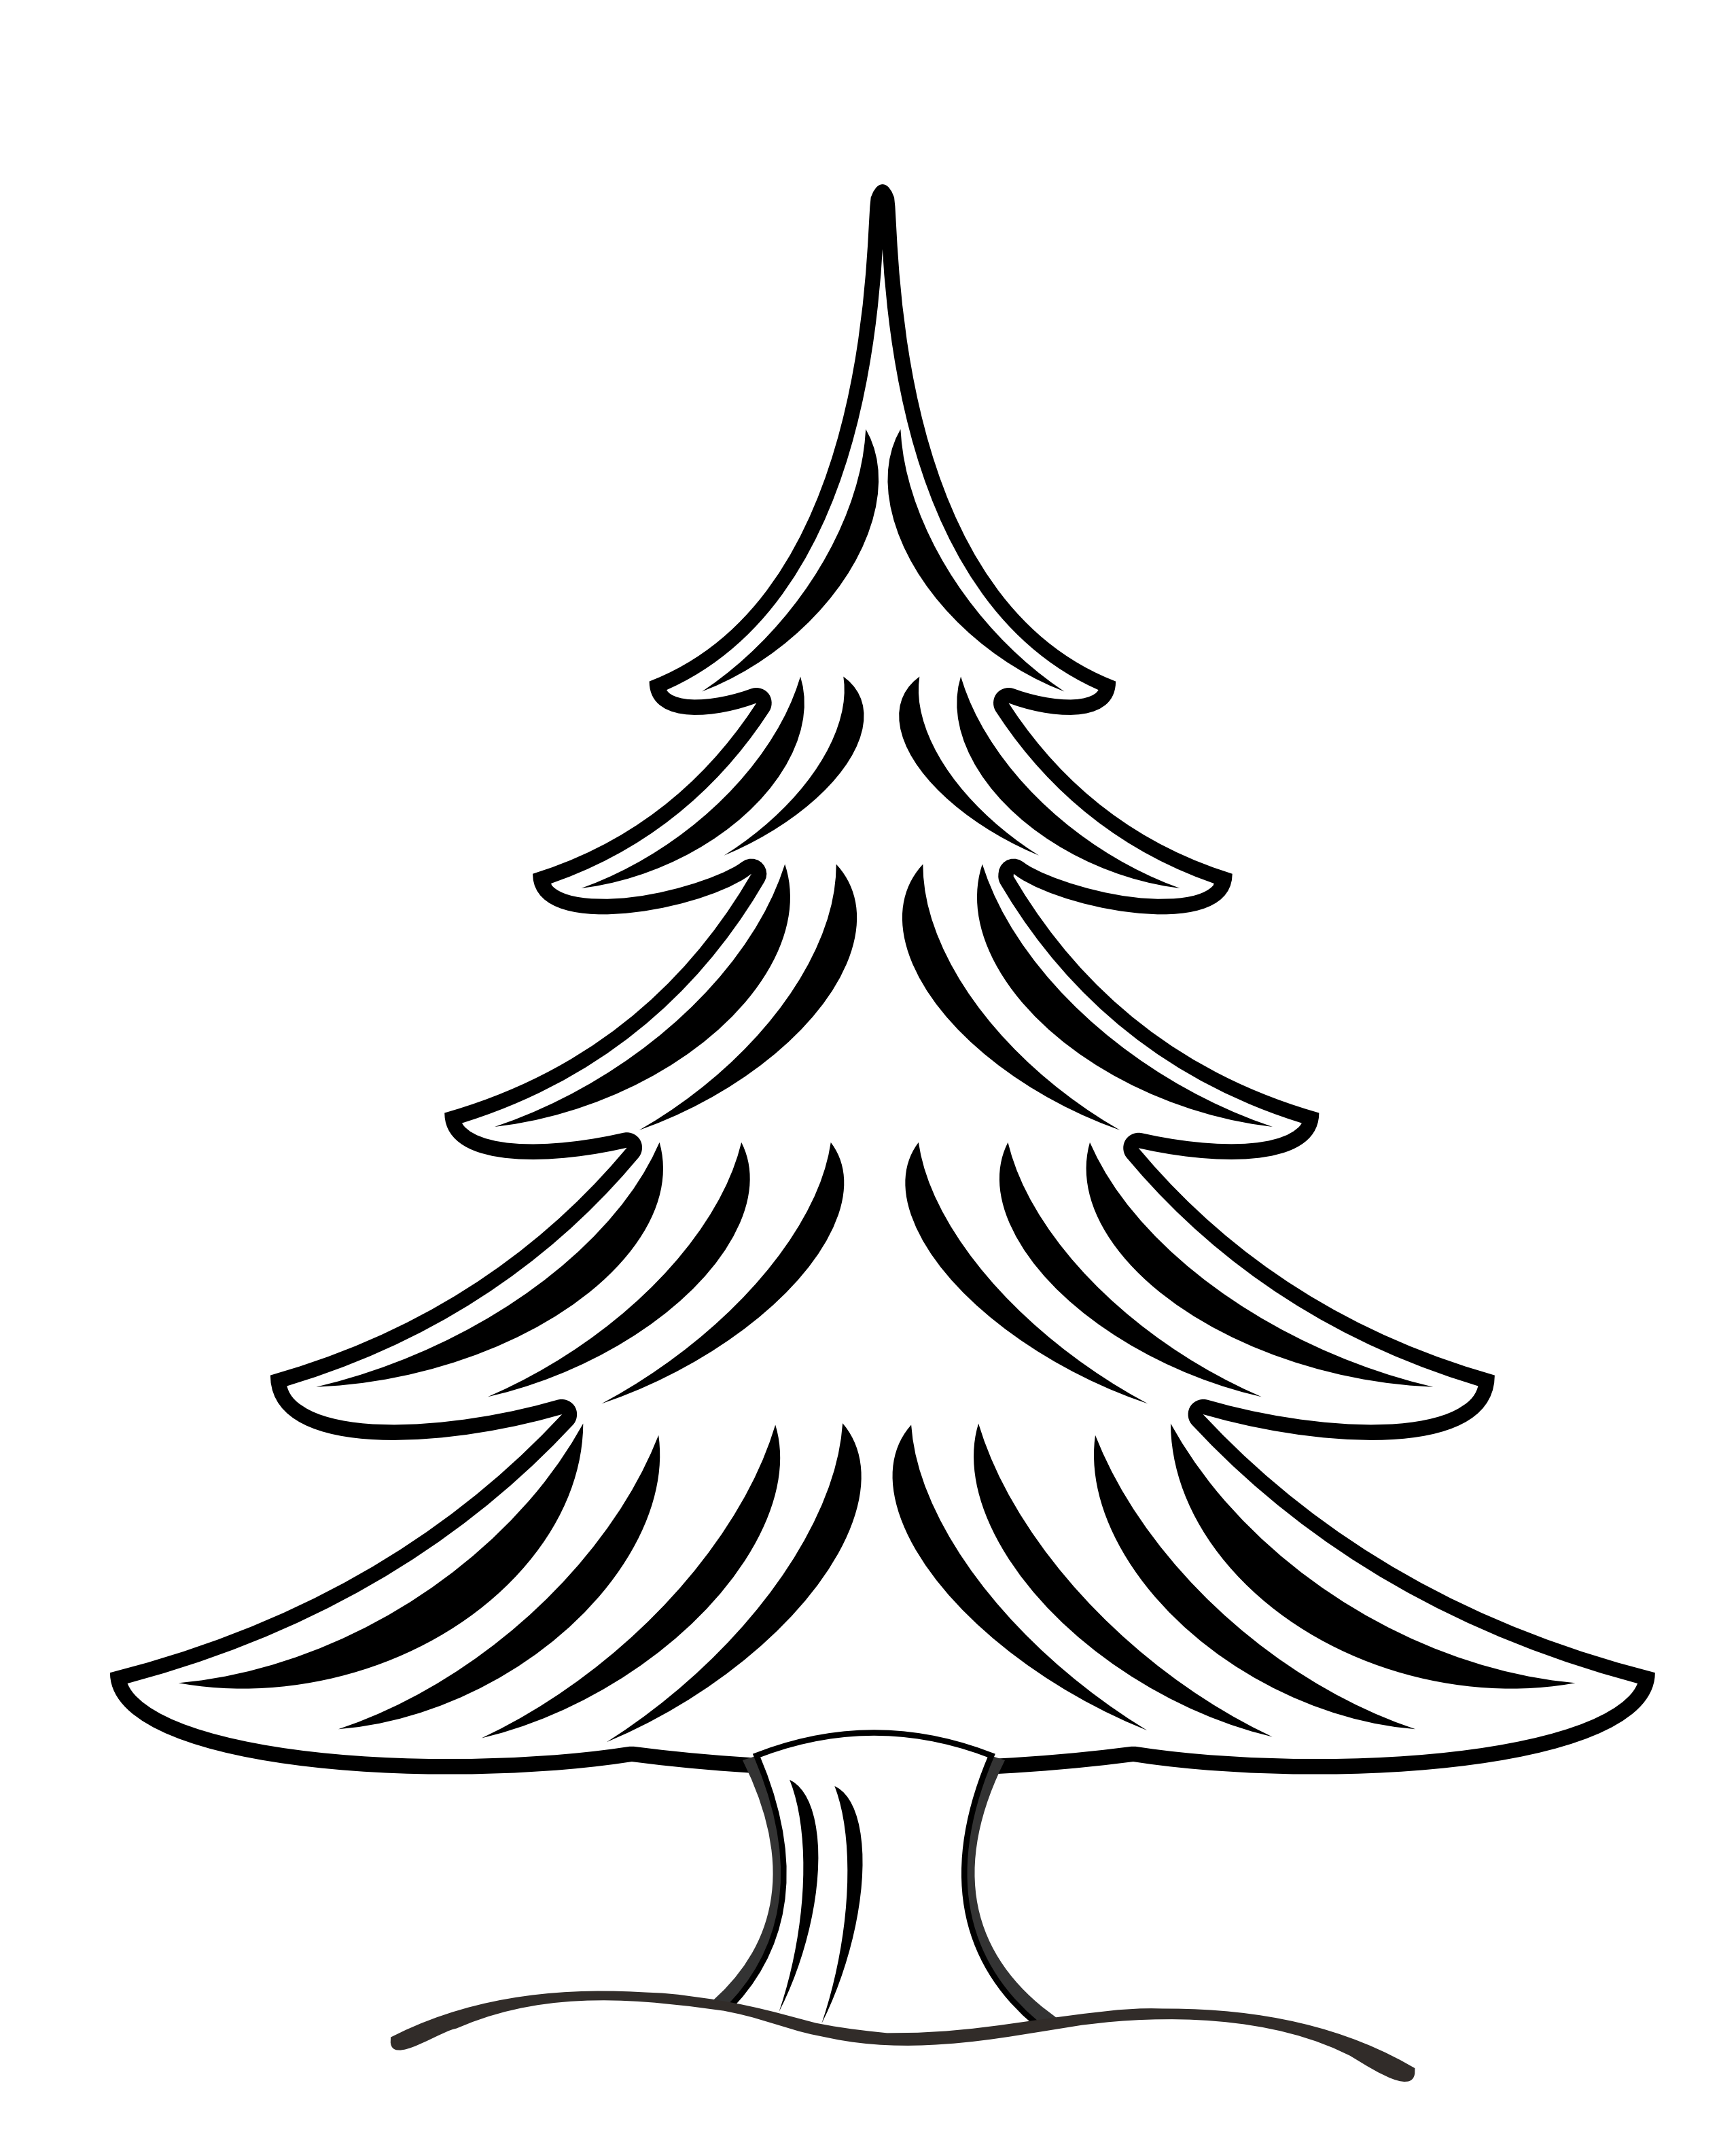 christmas tree clip art black and white cliparts co rh cliparts co christmas tree black and white clipart free christmas tree decorations clipart black and white